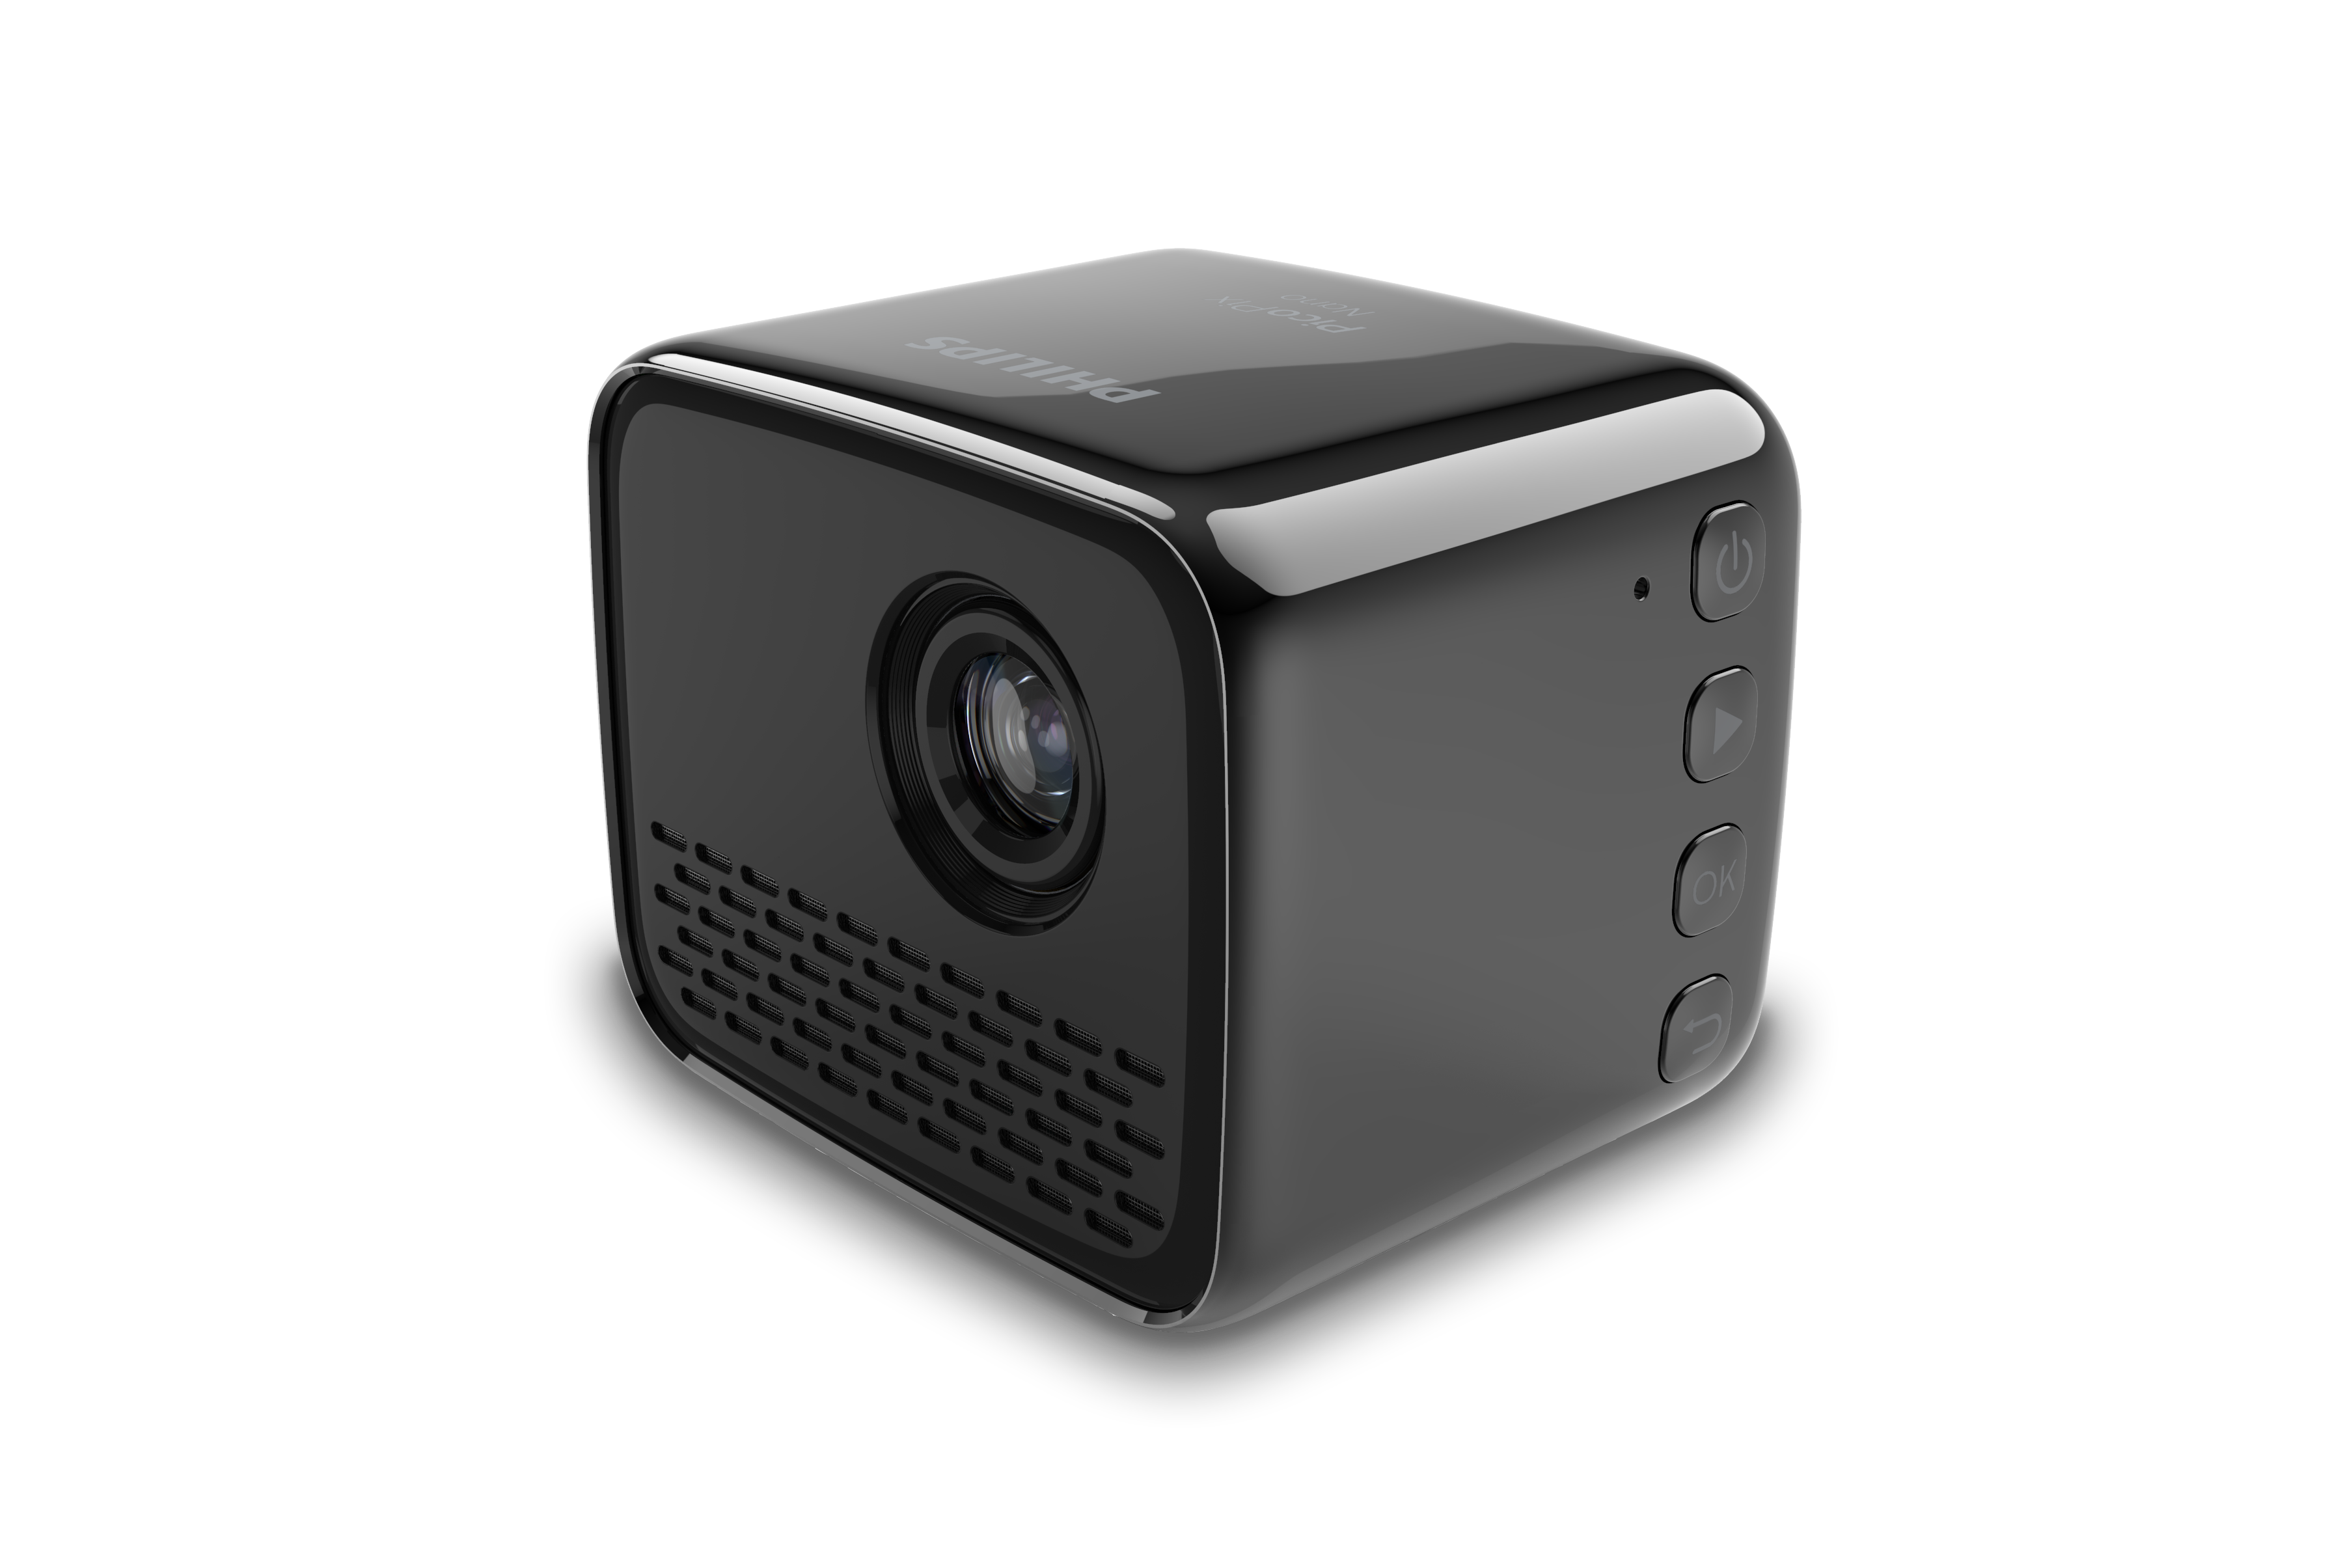 Nebra AnyBeam, world's Smallest pocket-size Laser Projector